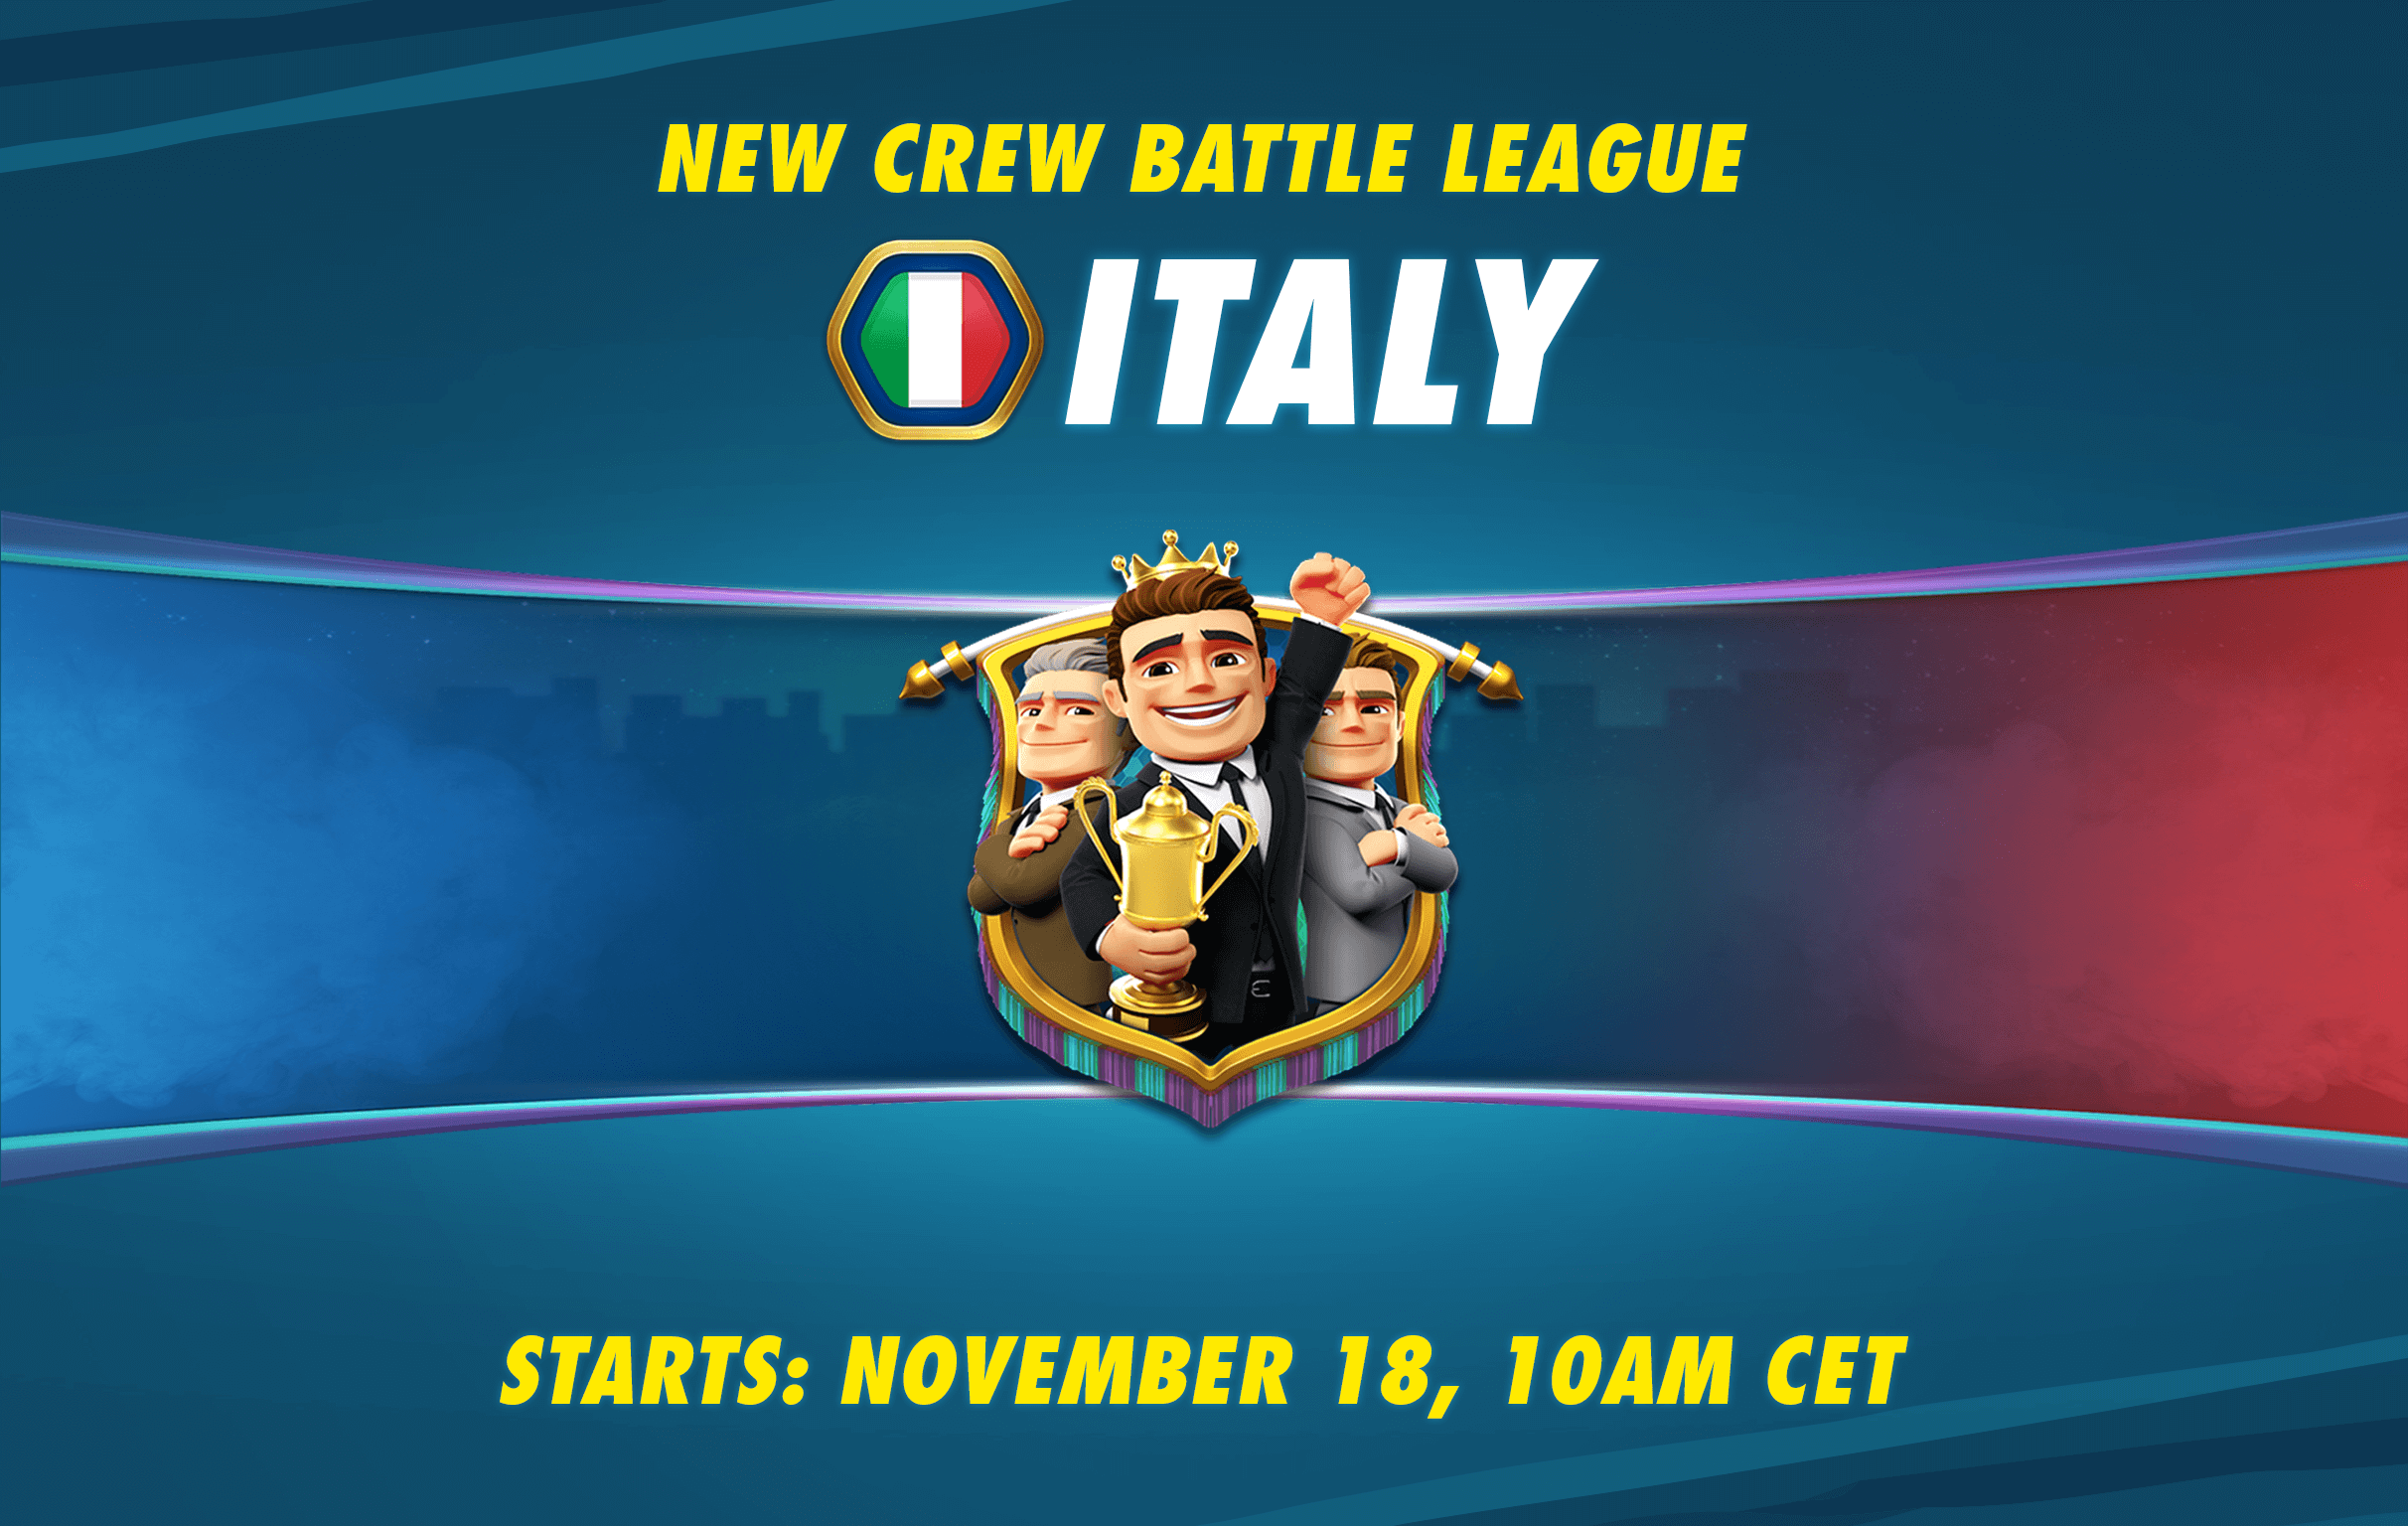 CP_Crew Battle League_IT.png